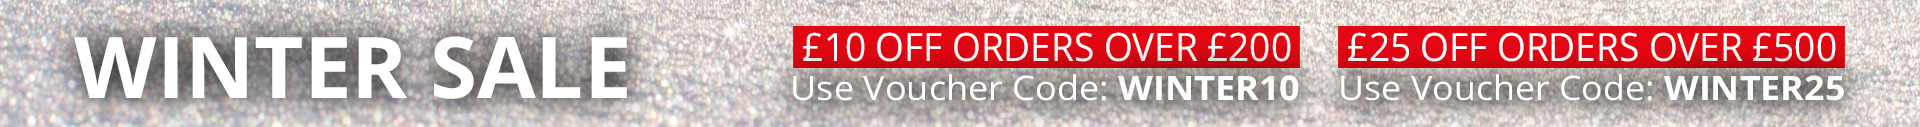 Get £10 Off Orders over £200 with Code: WINTER10 or £25 Off Orders over £500 with Code WINTER25